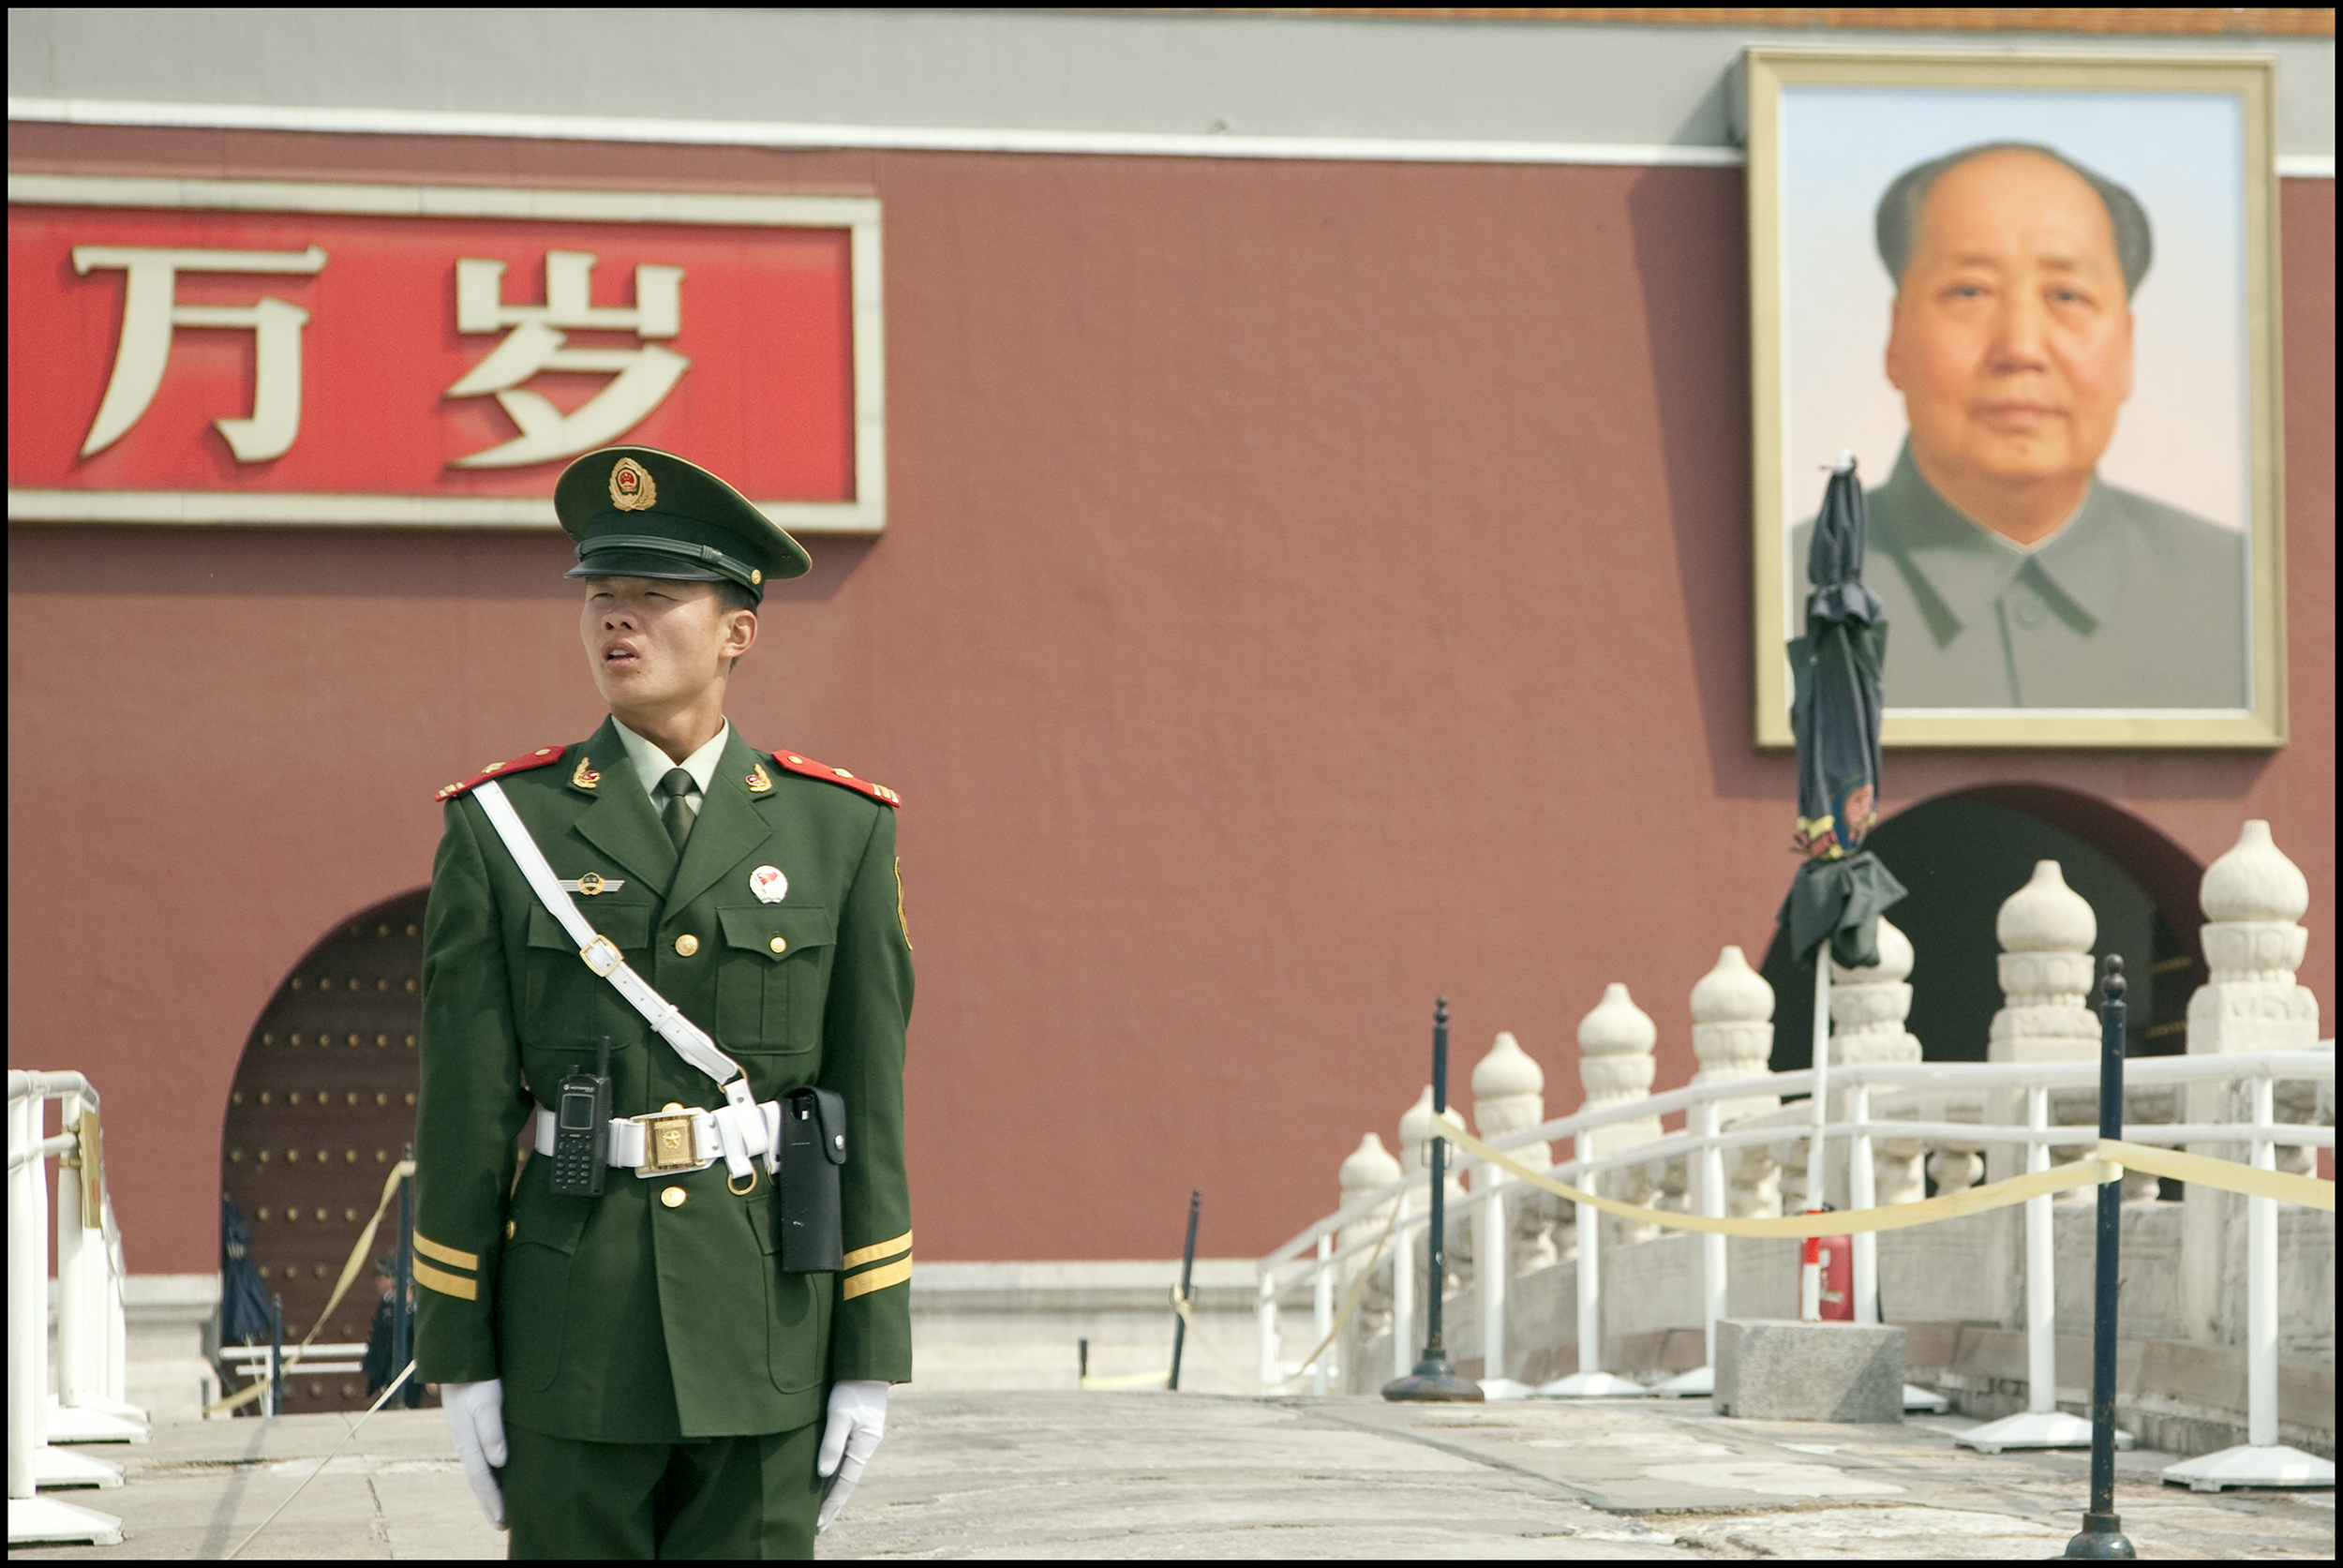 Forbidden City Entrance Soldier and Mao 18 inch.jpg